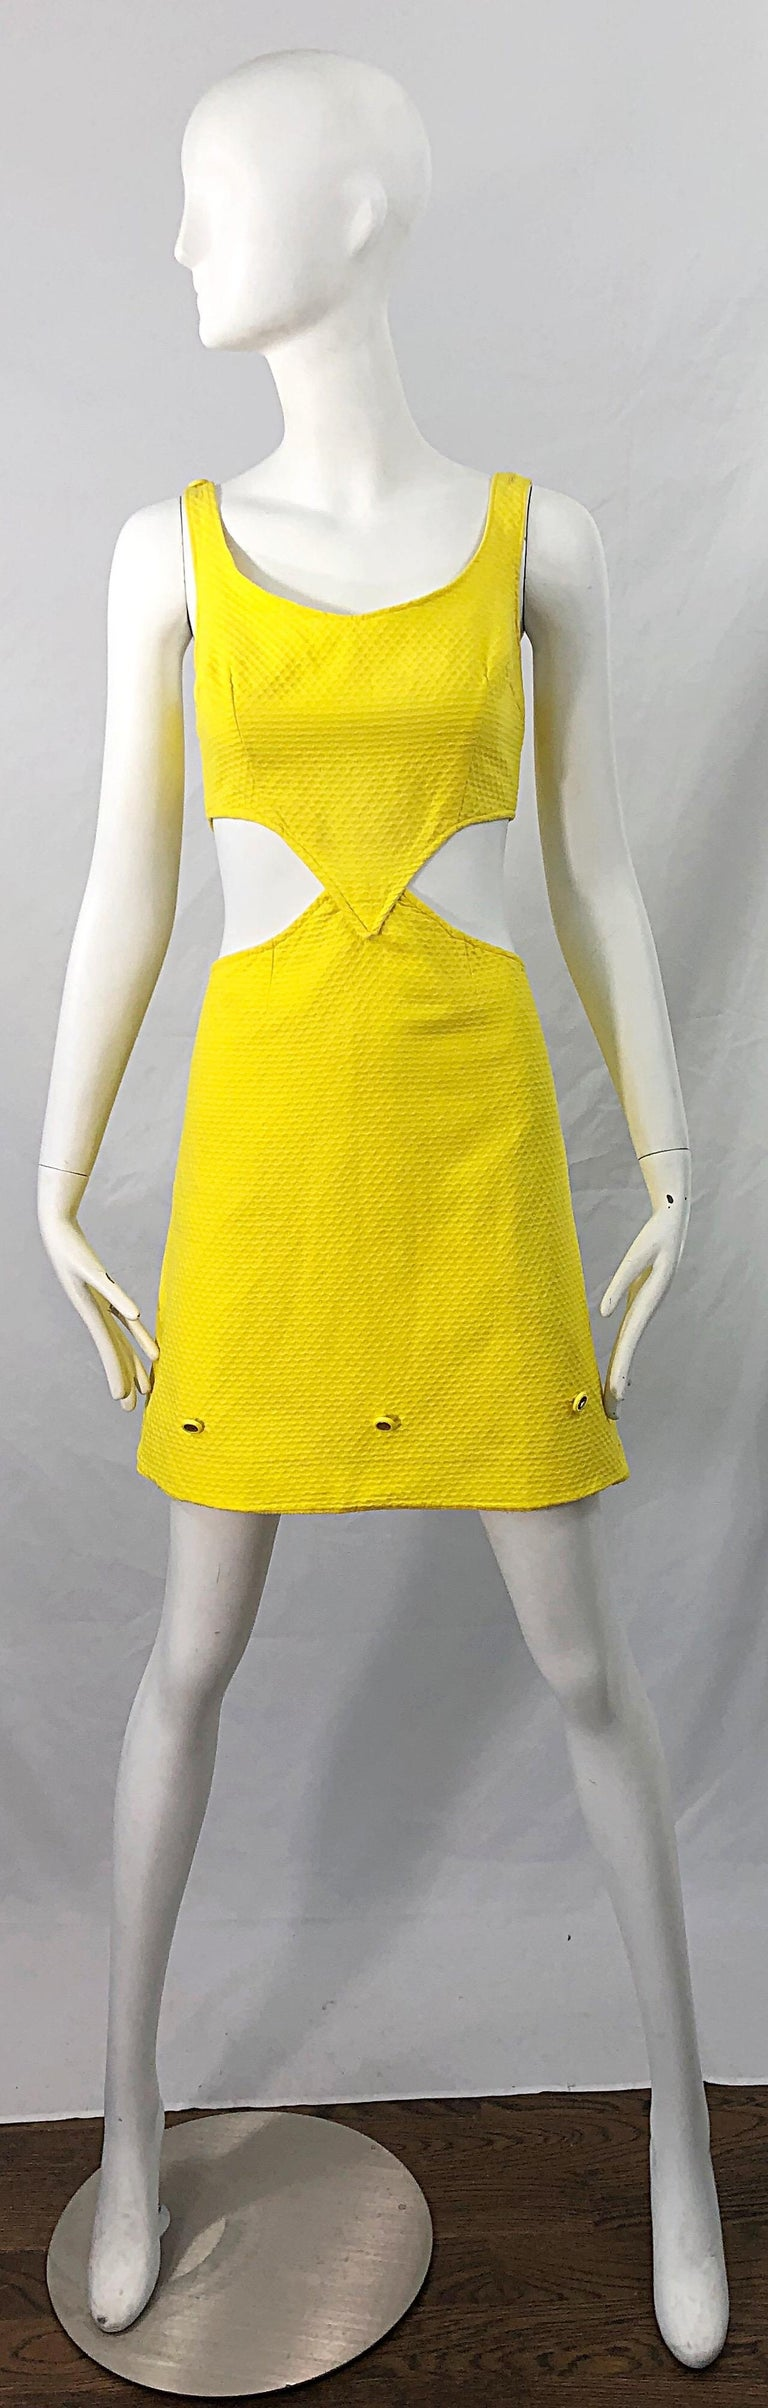 1960s Canary Yellow Cut - Out Honeycomb Cotton Vintage 60s A Line Dress For Sale 7